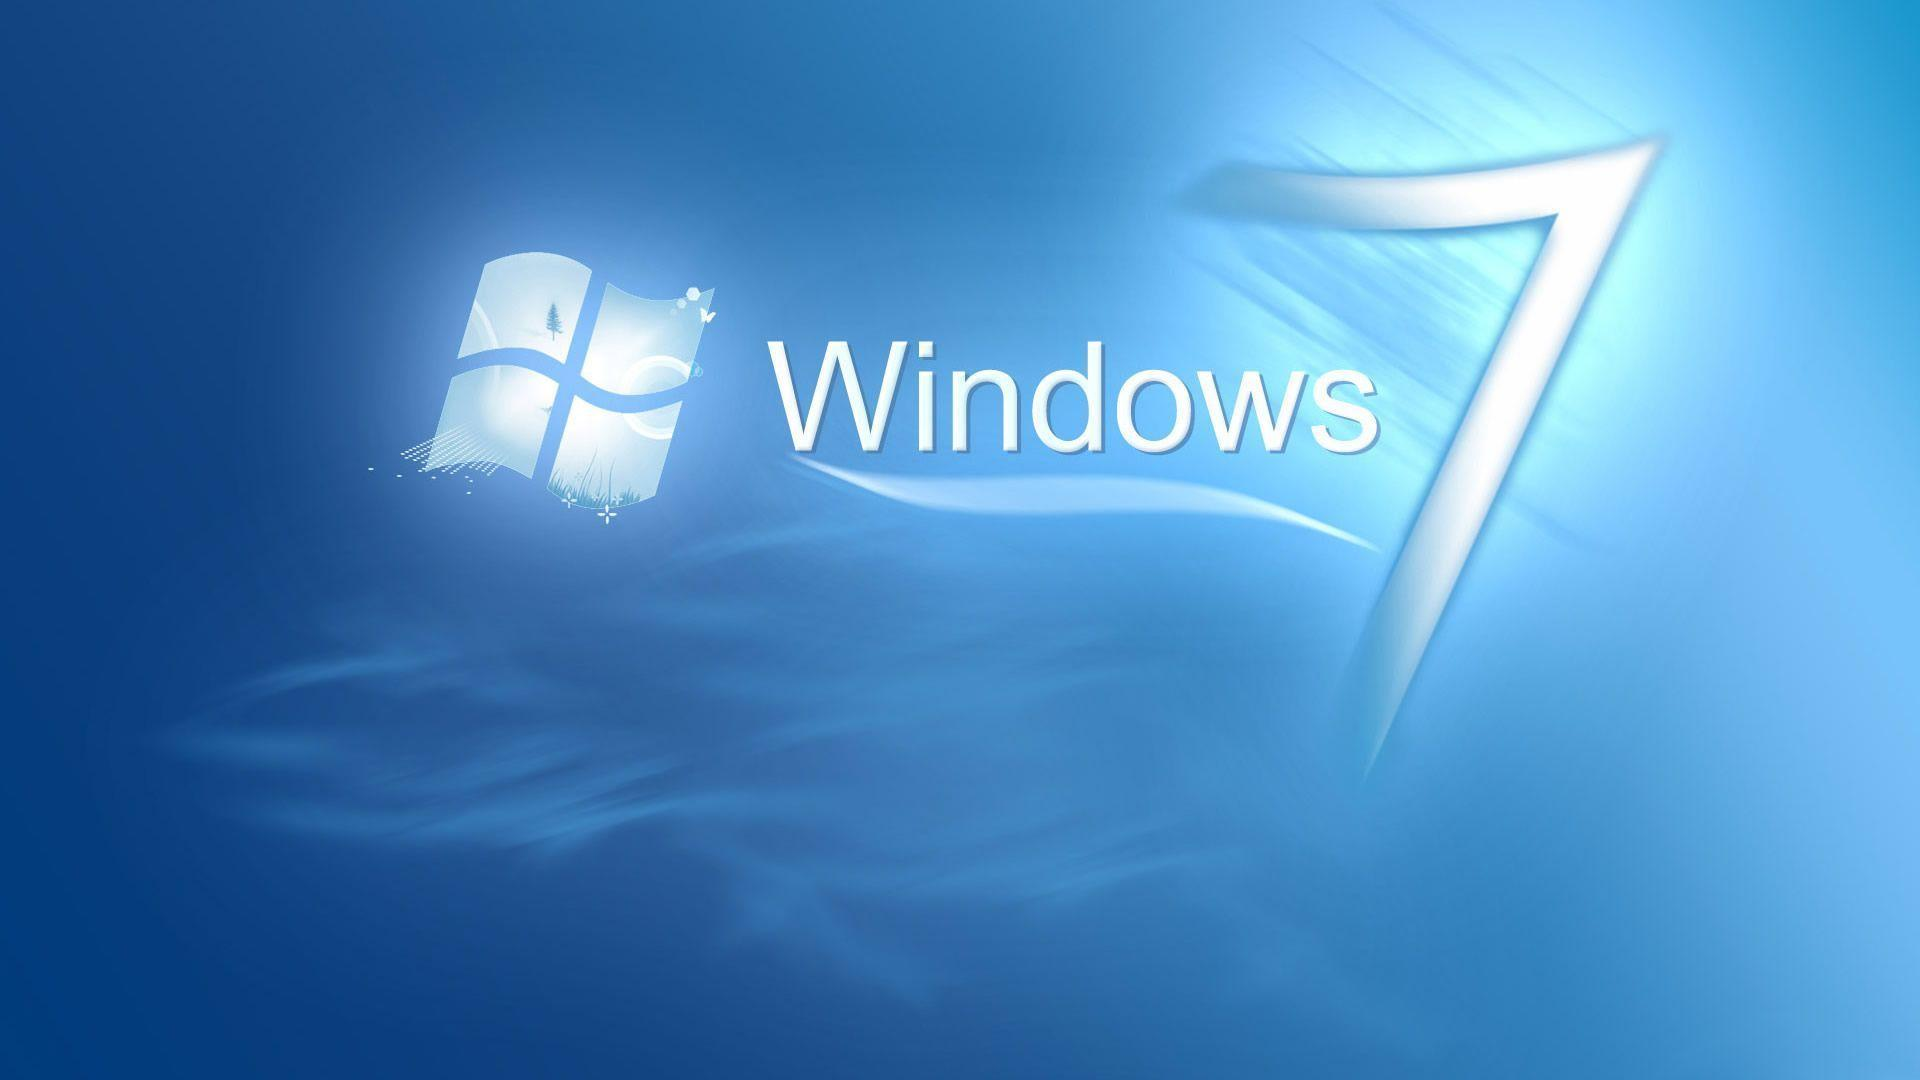 Image For > Windows 7 Wallpapers 1920x1080